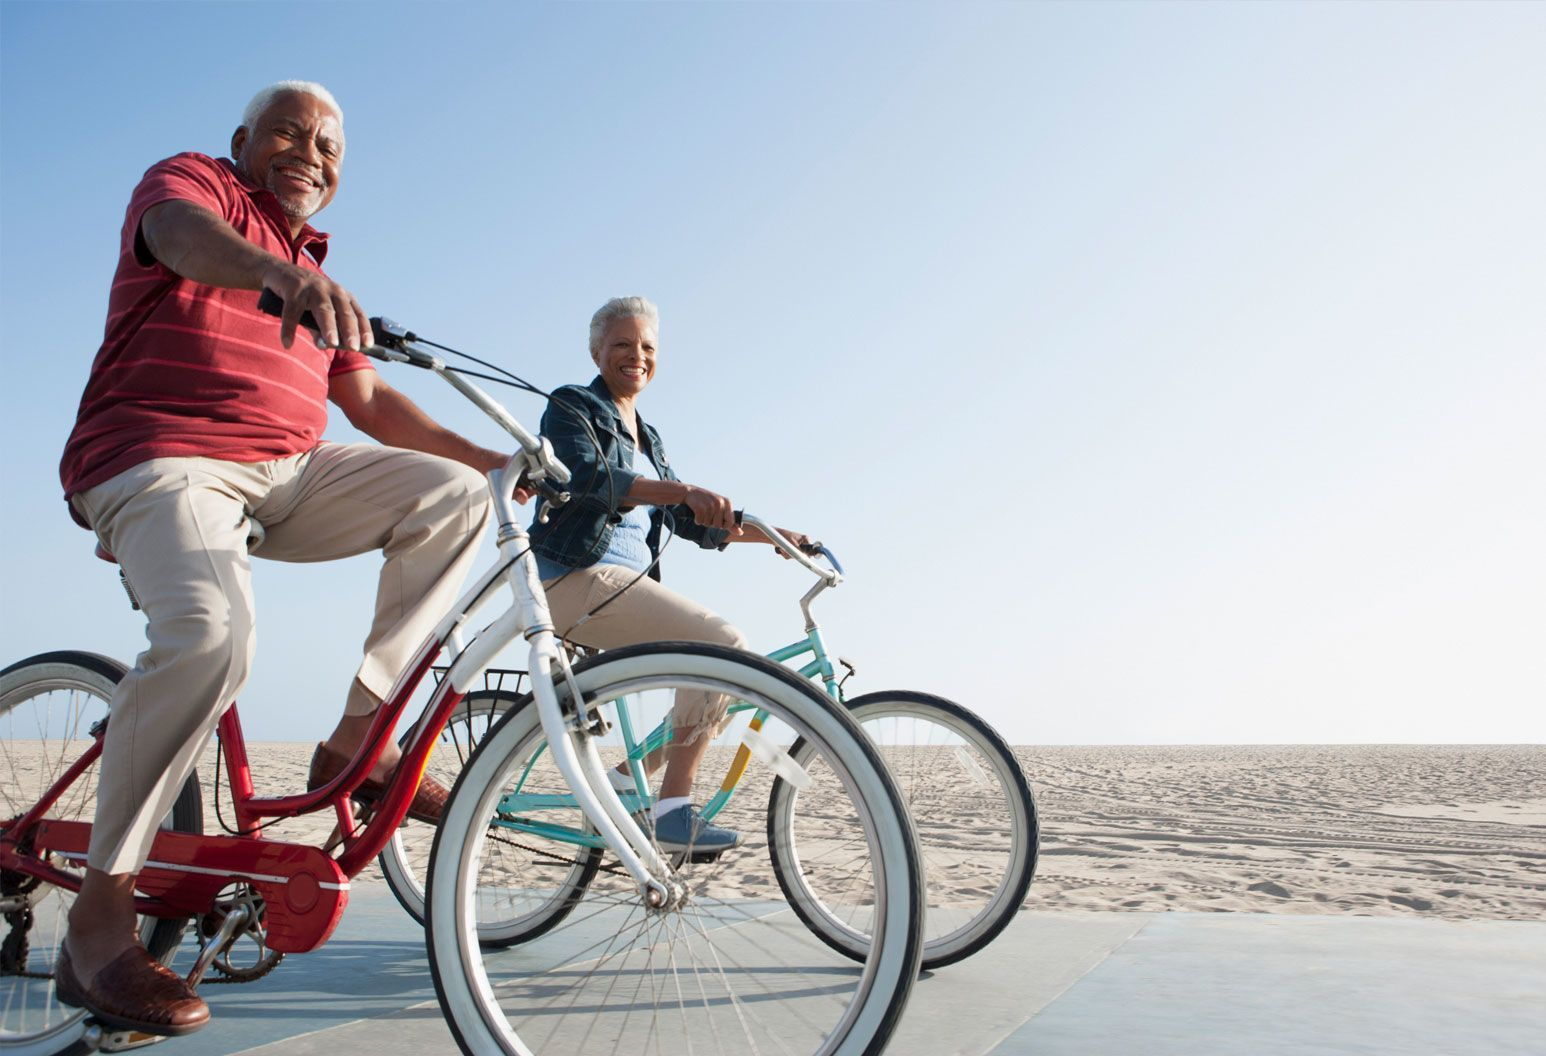 An elderly man and woman ride bikes on the sidewalk at the beach. They are both smiling and looking at the camera. It's a clear day with a blue sky and the sun is shining.